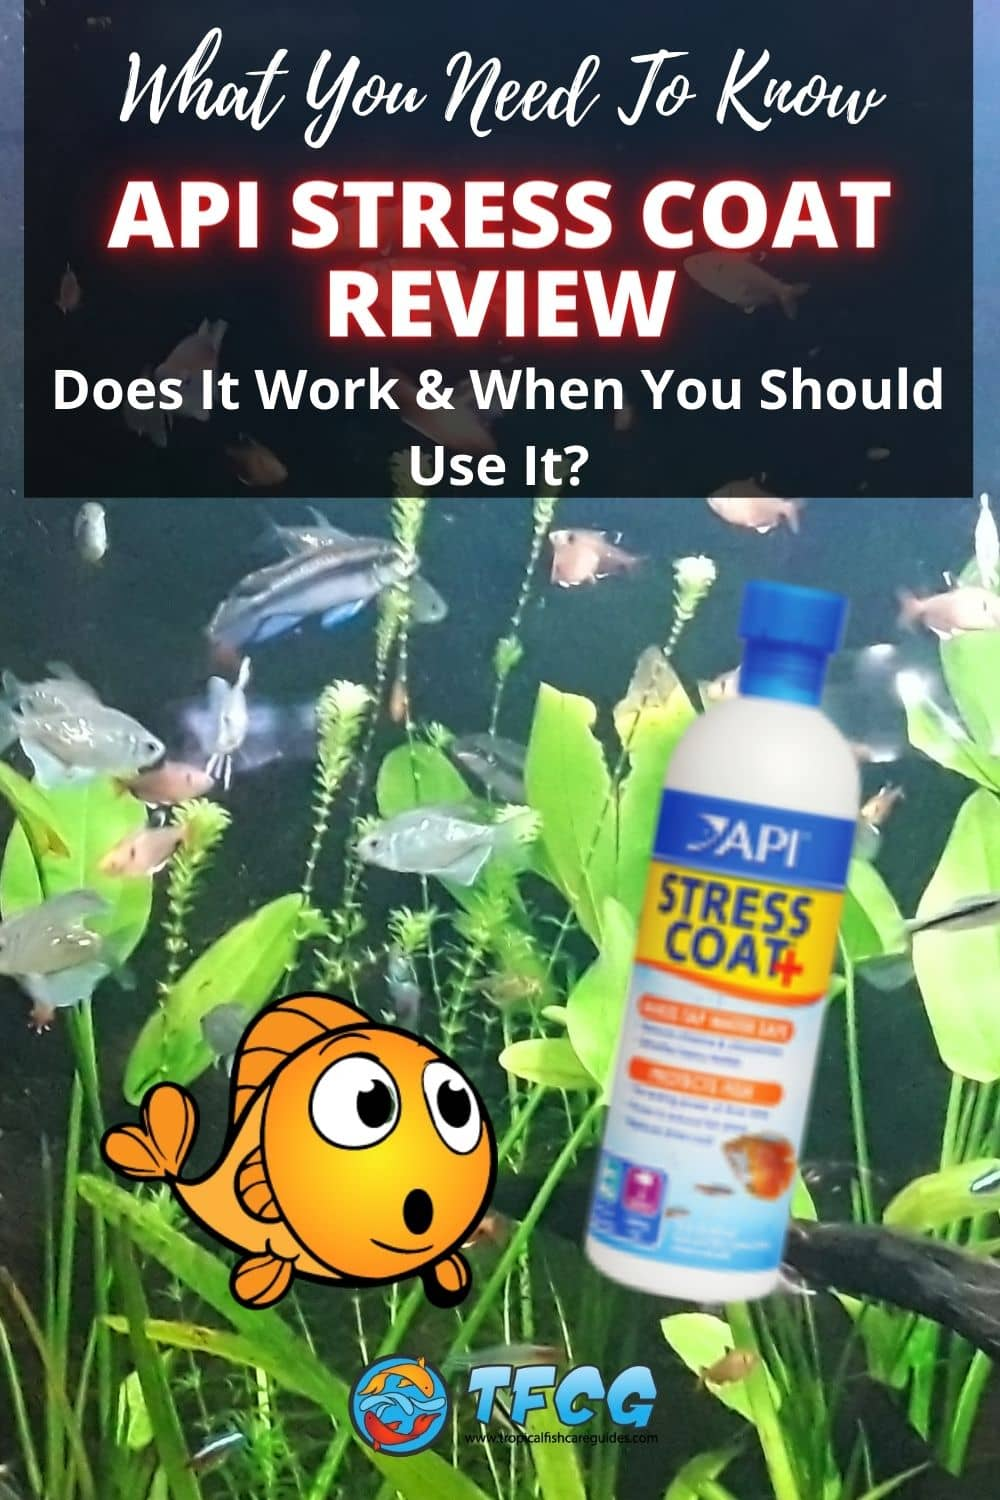 API Stress Coat Review - Does It Work & When You Should Use It